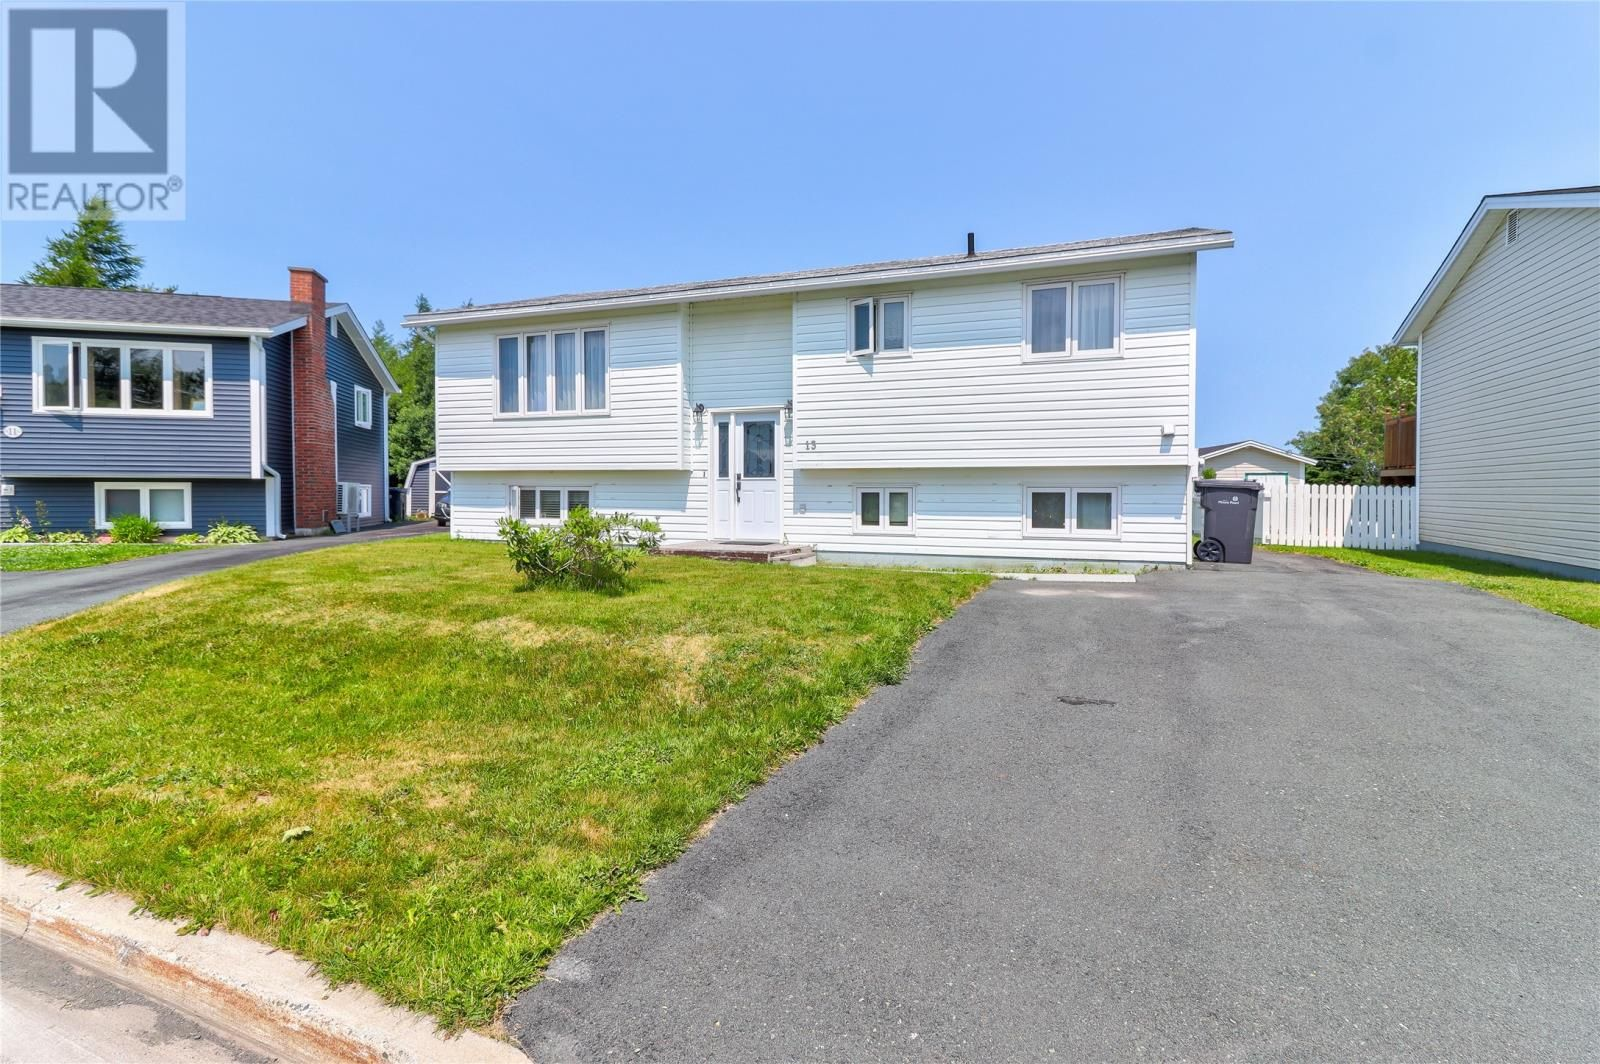 Main Photo: 13 Burgess Avenue in Mount Pearl: House for sale : MLS®# 1233701